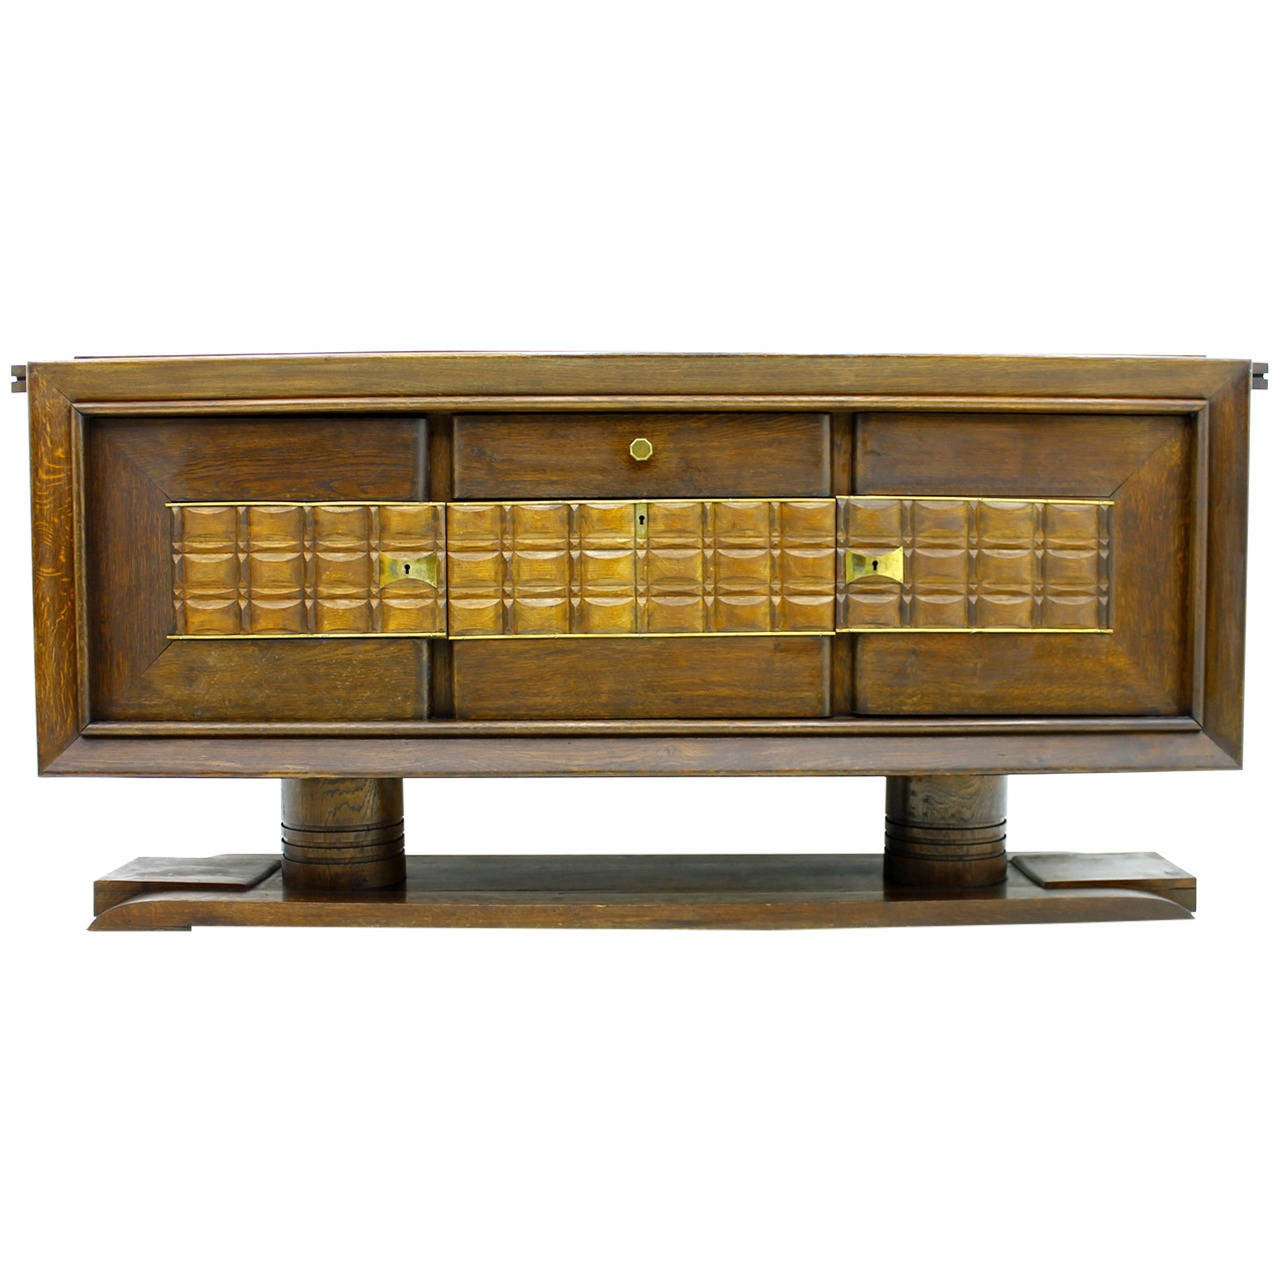 Brutalist Credenza, Sideboard by Charles Dudouyt, France, circa 1940s